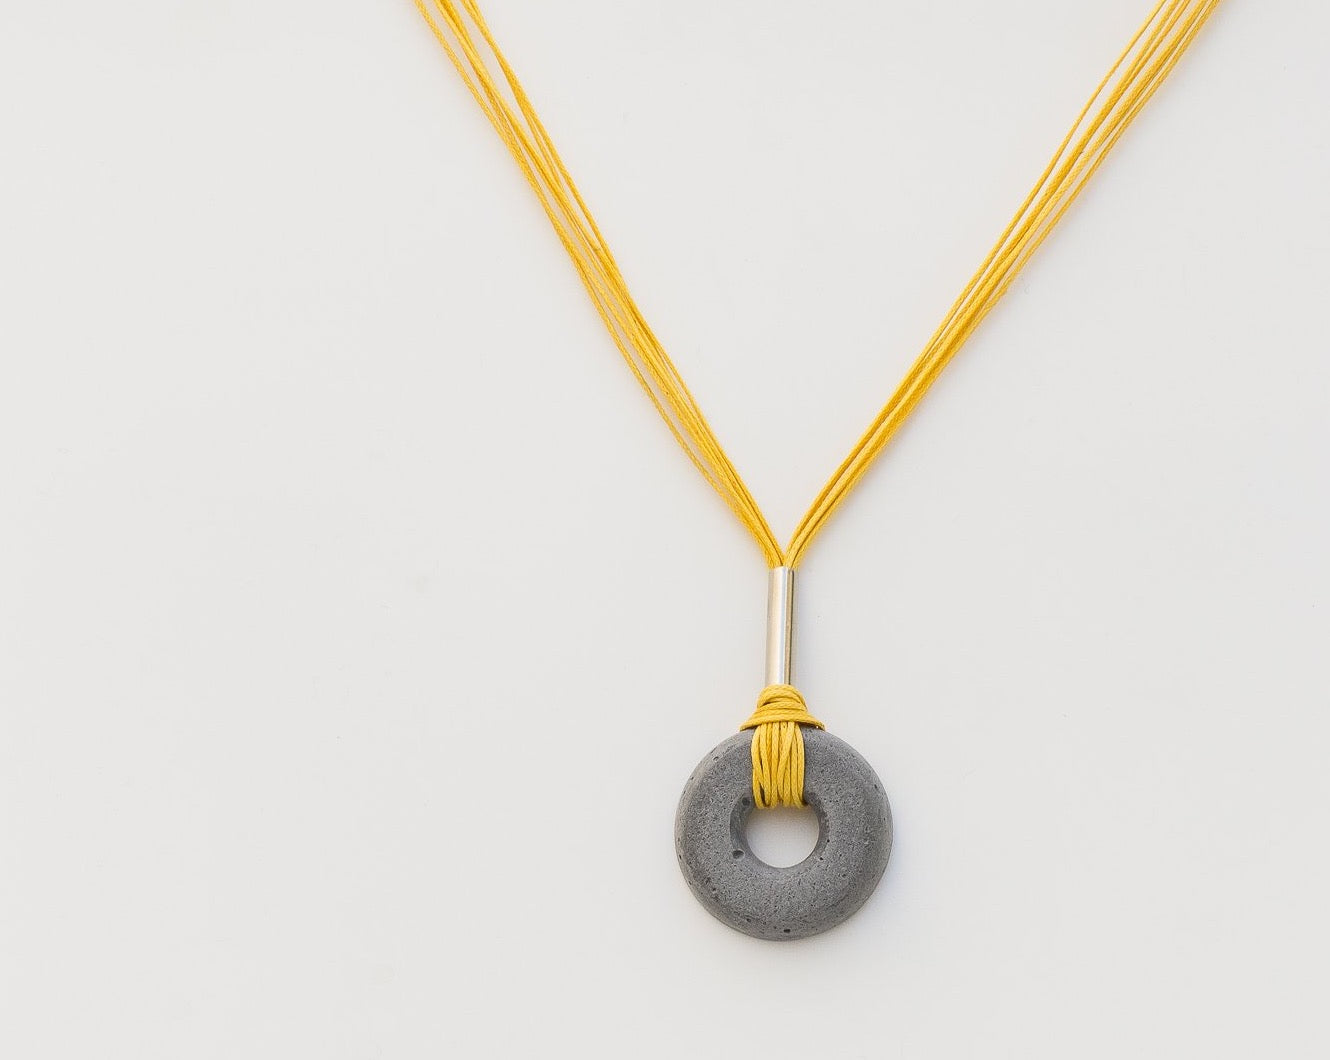 Concrete Alp Vrtt Grey Neckpiece - Aakaar Collection - Eliteearth